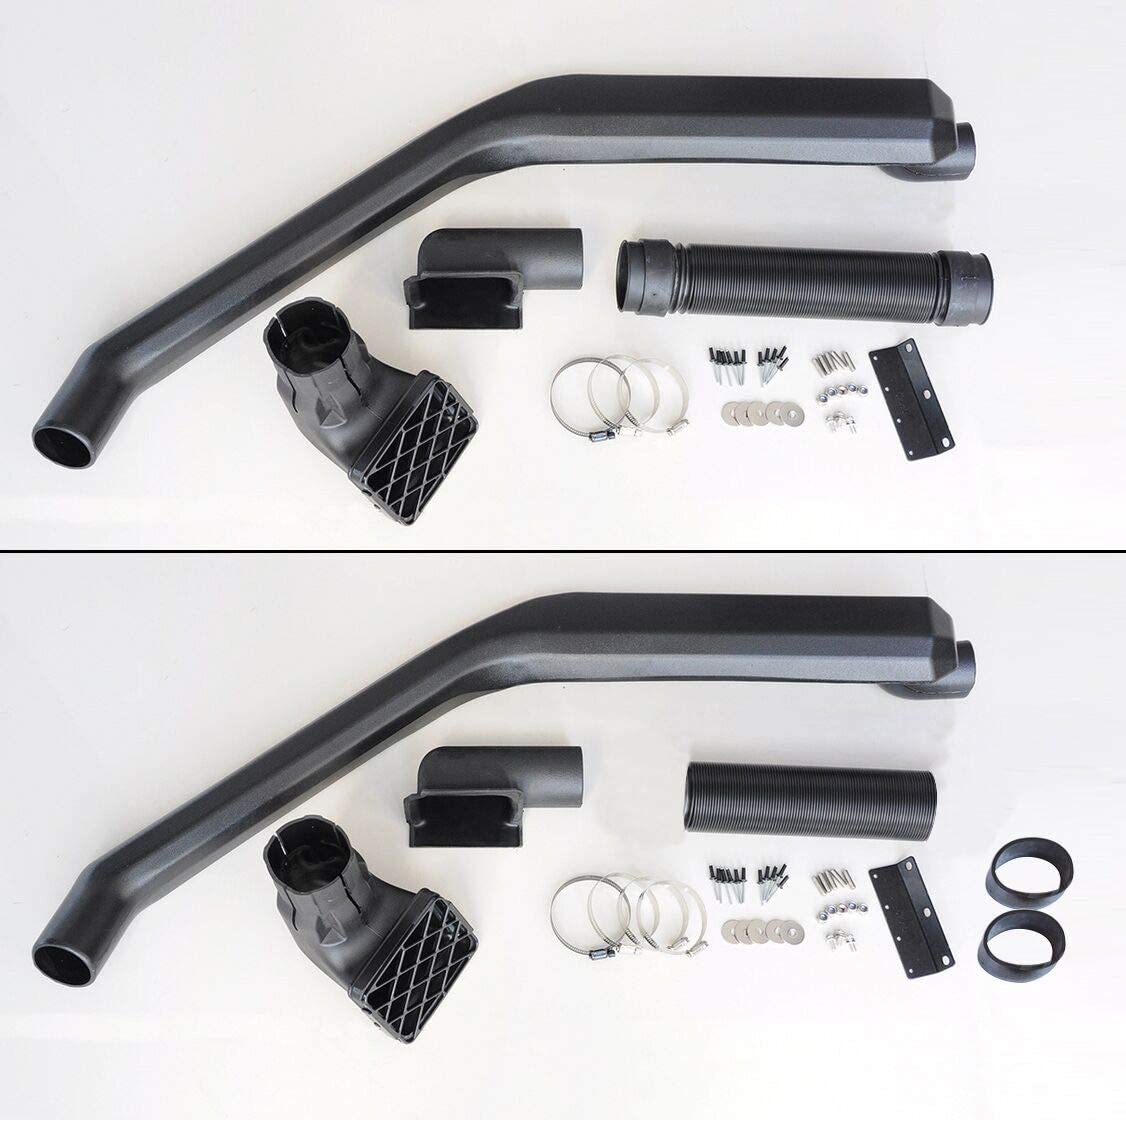 hegene Compatible for Ranking integrated 1st place New Air Finally resale start Ram pla Snorkel Kit Set Intake Car